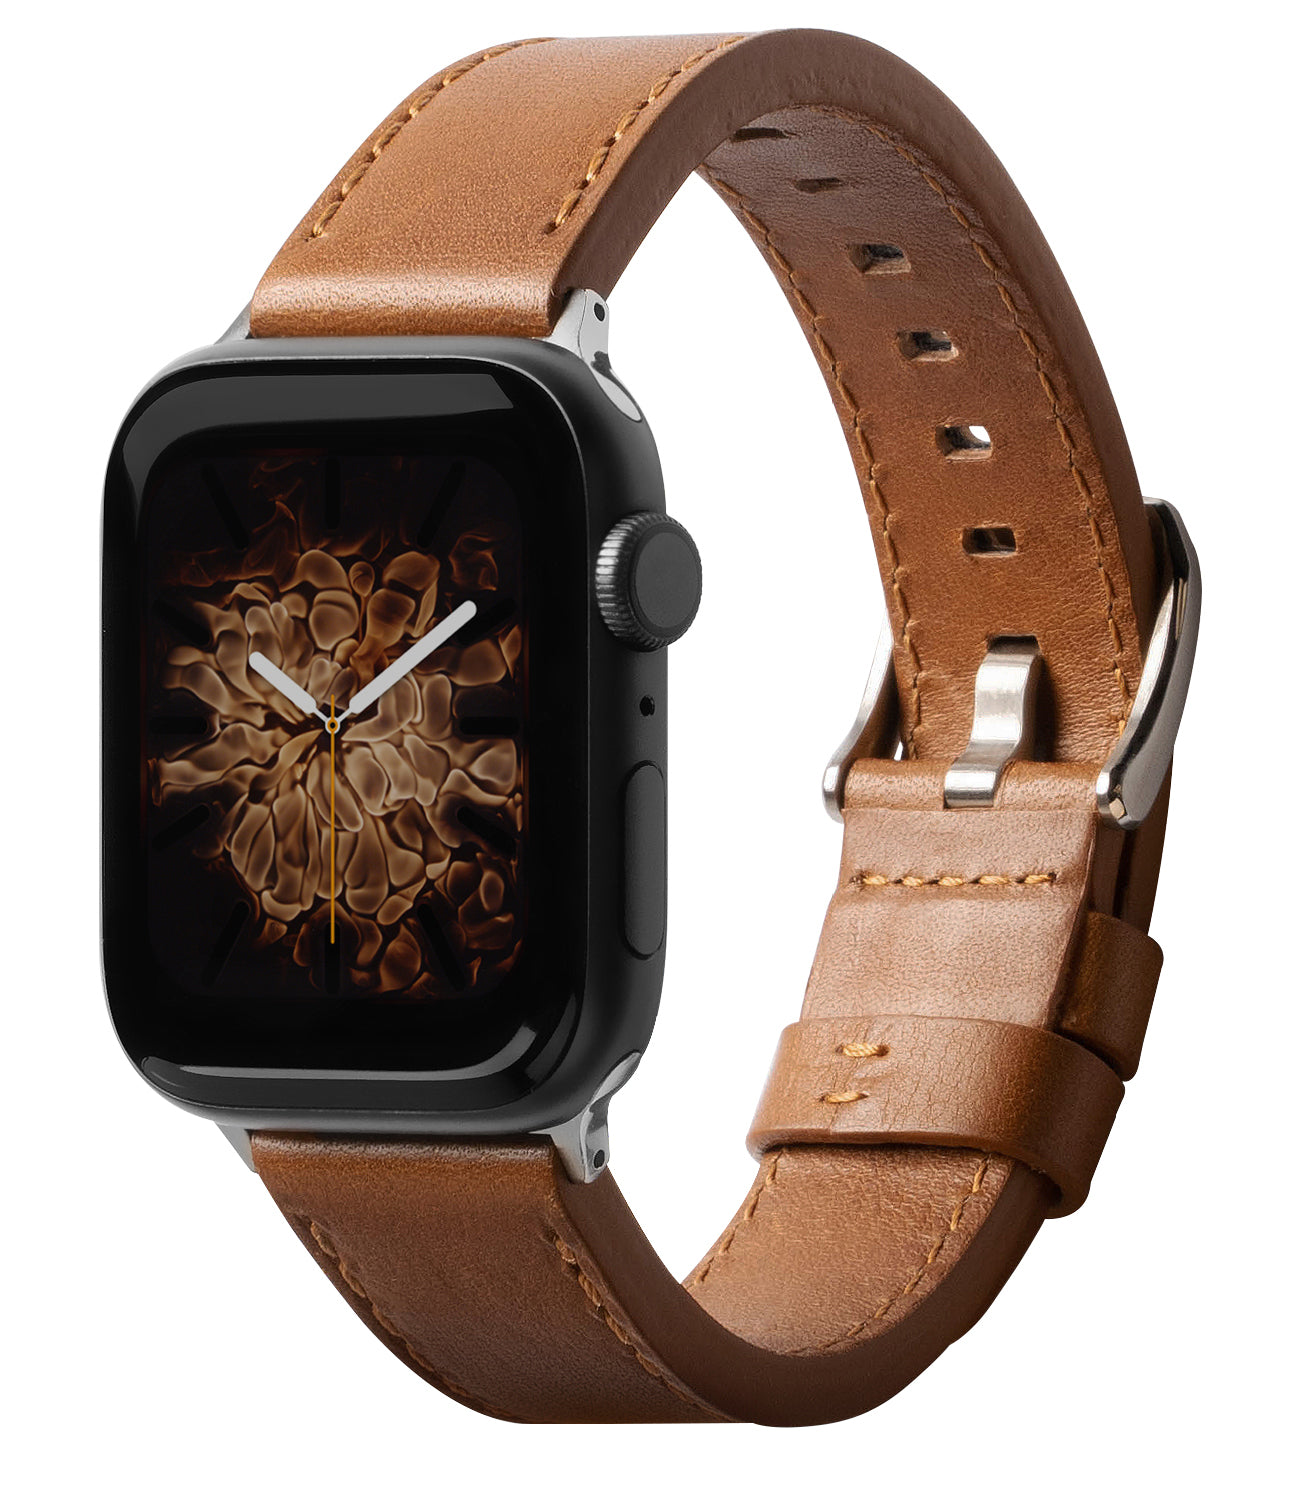 Ringke Leather One Classic Watch Band for Apple Watch 1/2/3 (42mm) - brown